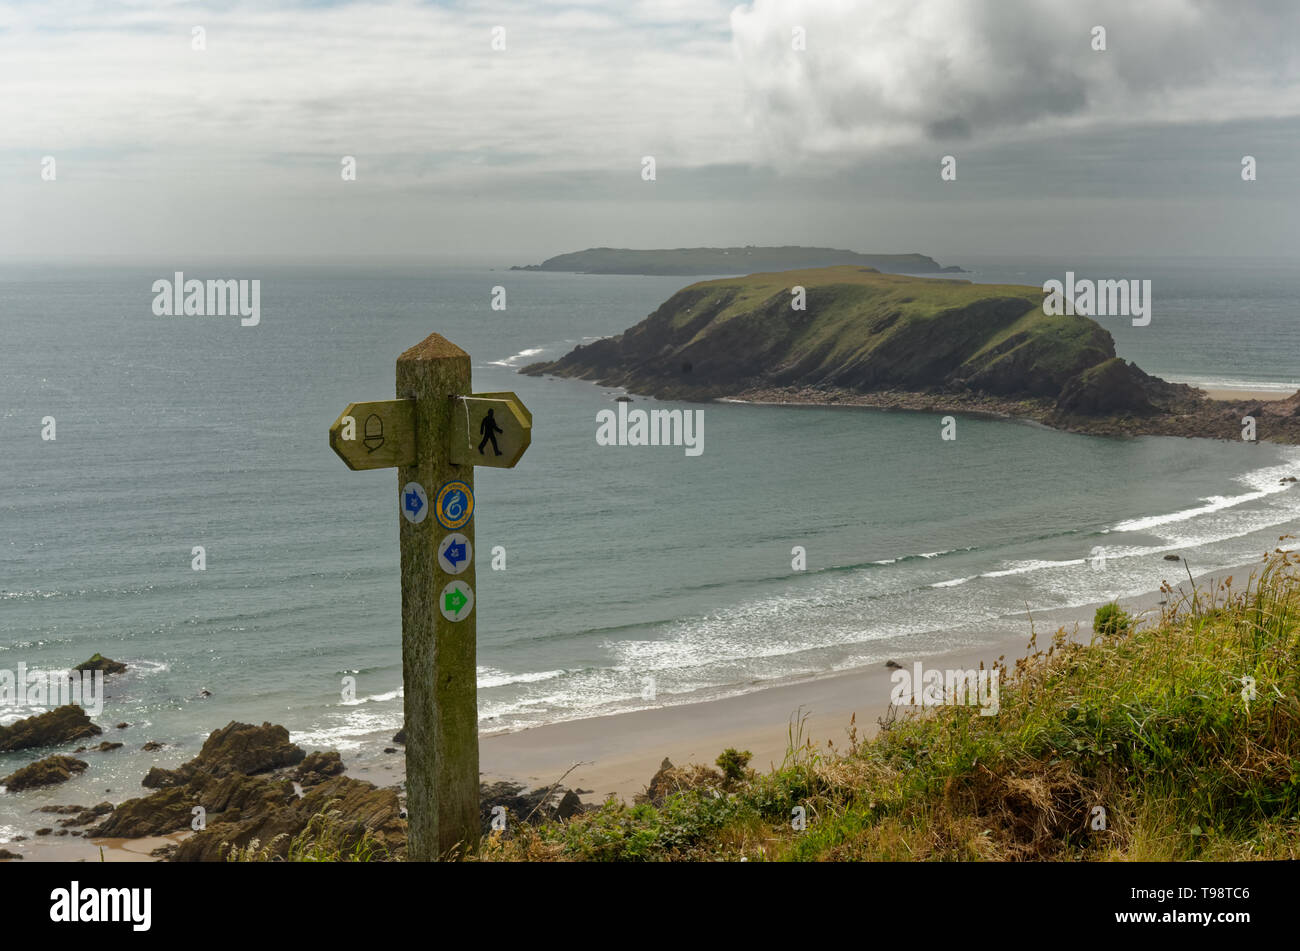 Pembrokeshire Coast Path marker post near Martin's Haven on the Marloes Peninsula coastal path in Wales - Stock Image